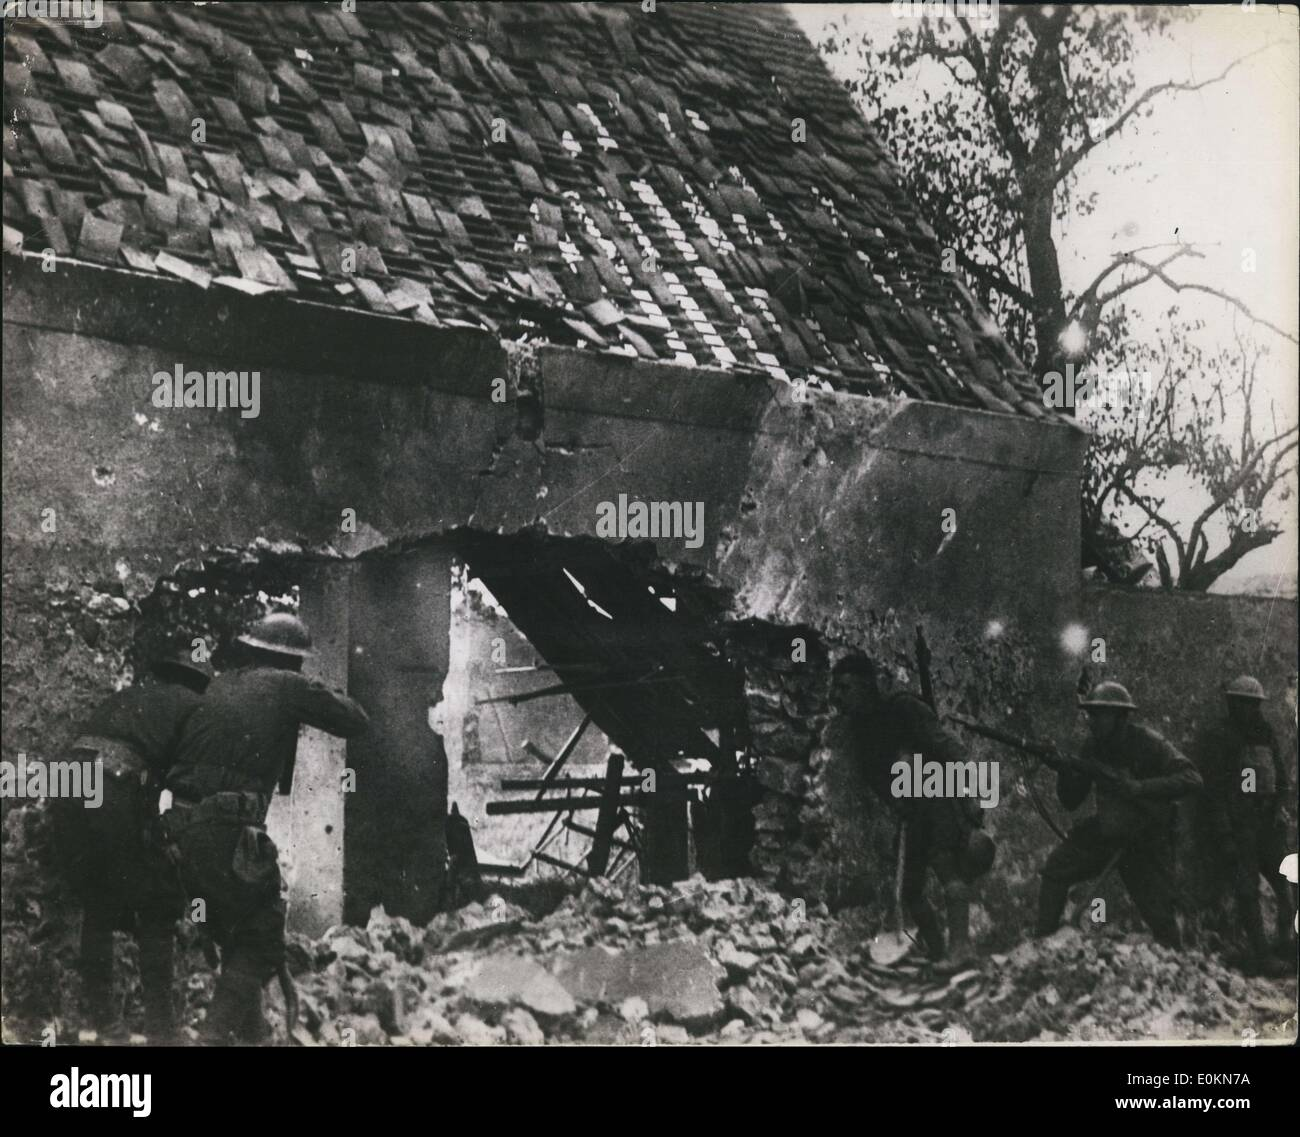 Jul. 07, 1918 - American Snipers of 168th Infantre 42nd Div in nest picking off Germans Villiers - France - July 30-1918 - Stock Image